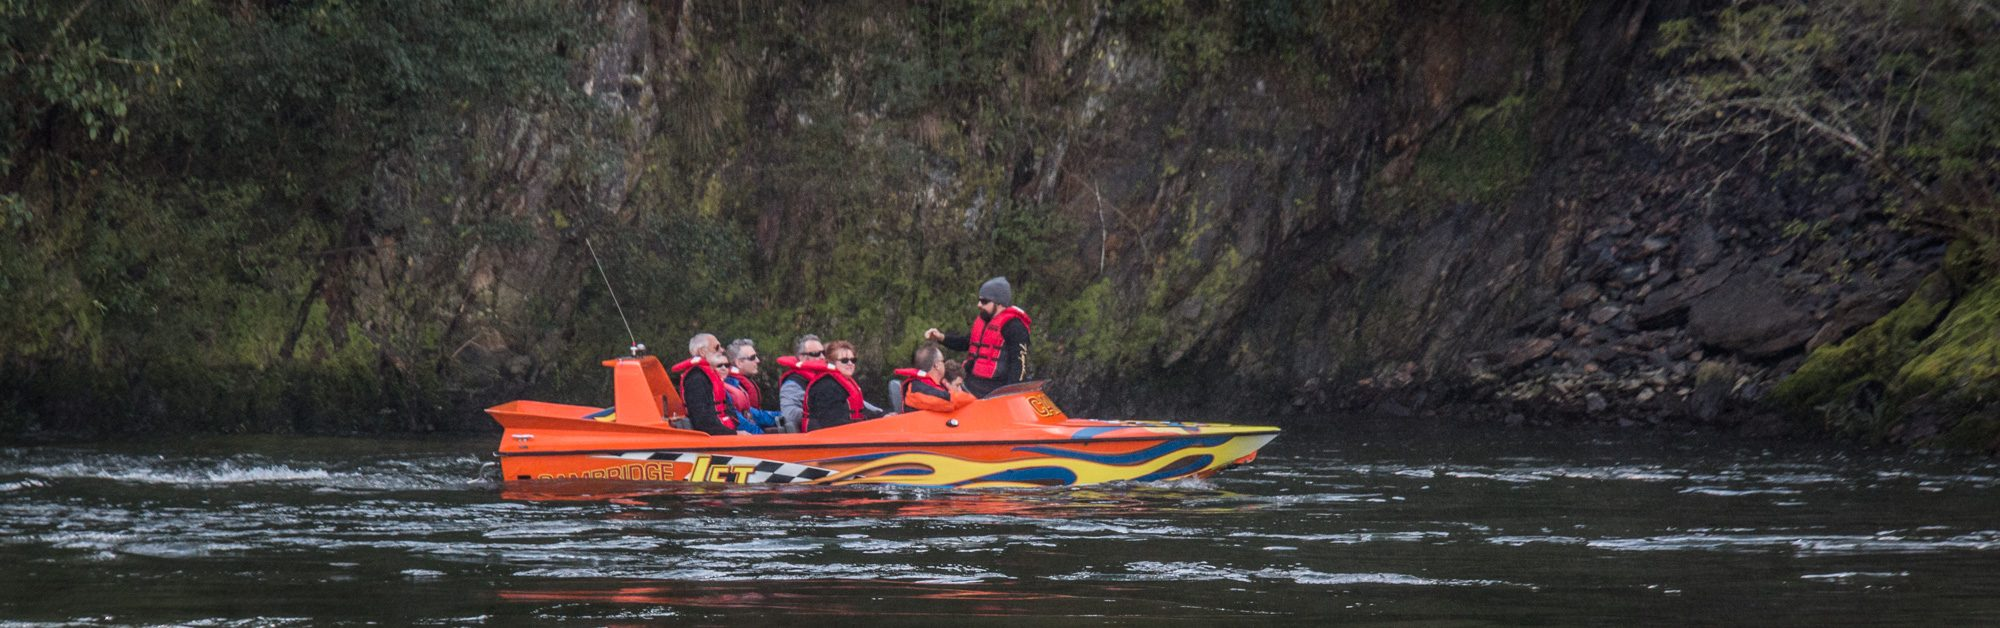 Jet boat NZ, with Camjet. Full boat getting commentary